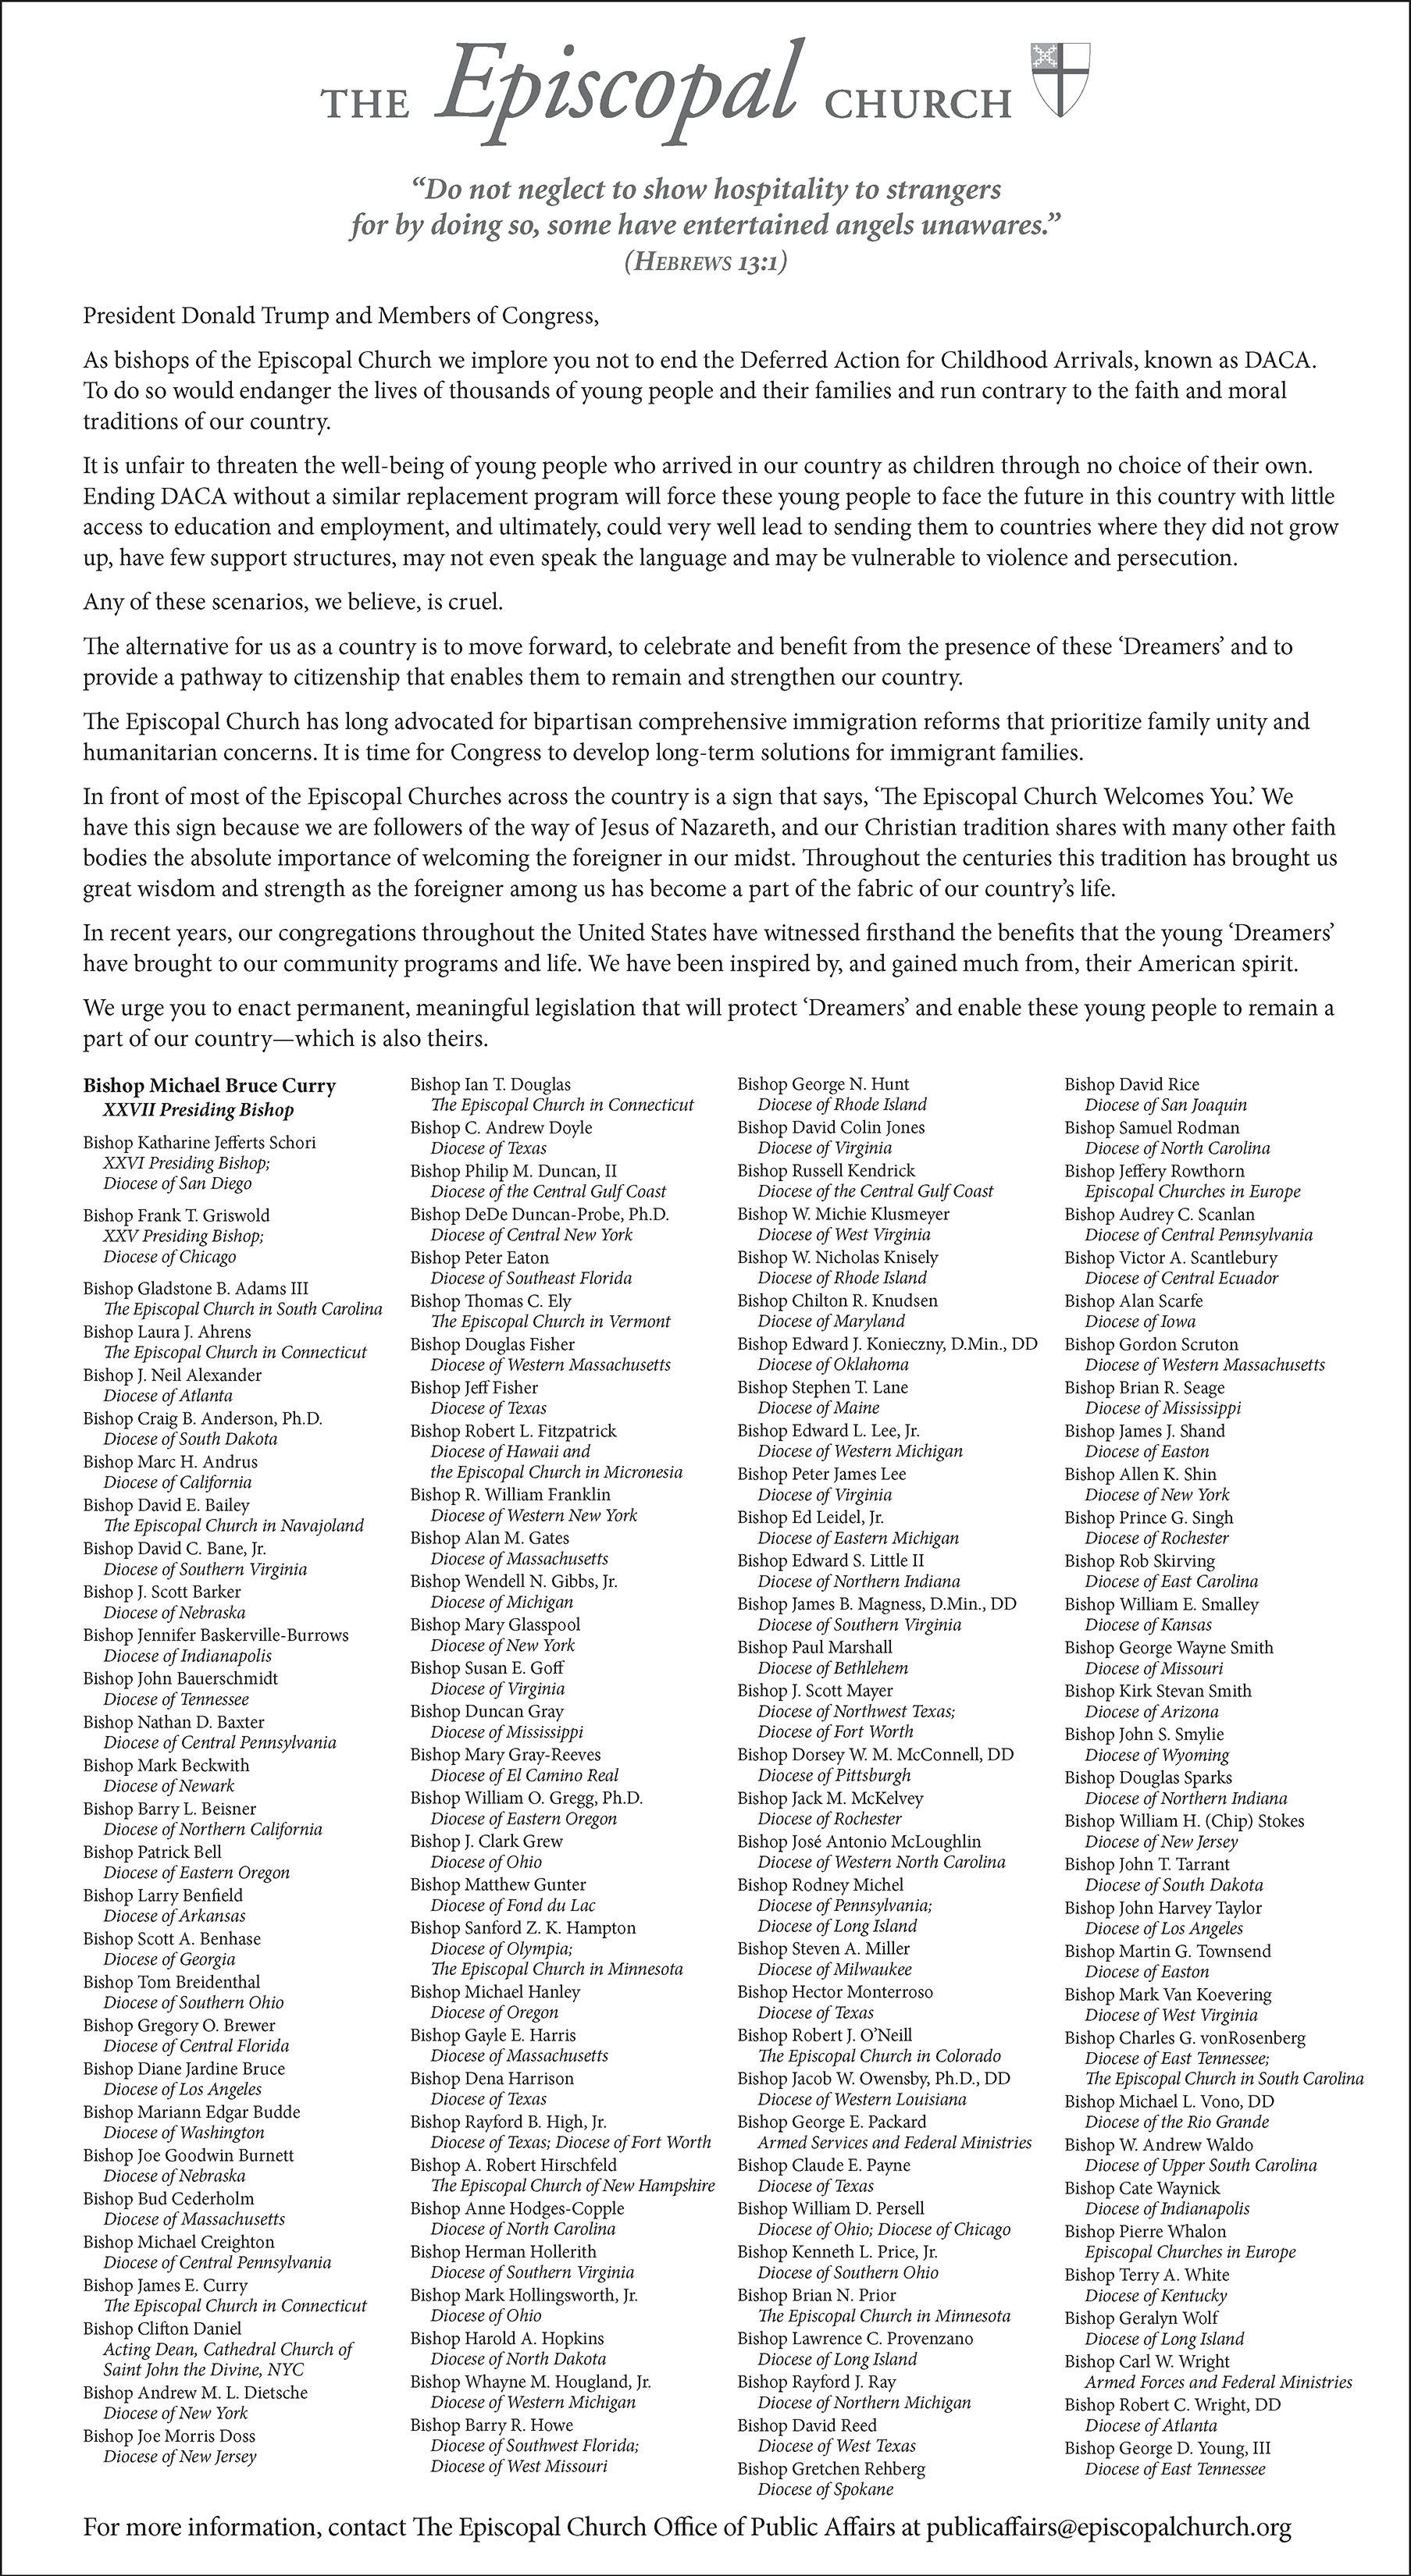 Letter from Episcopal Bishops to President, Congess